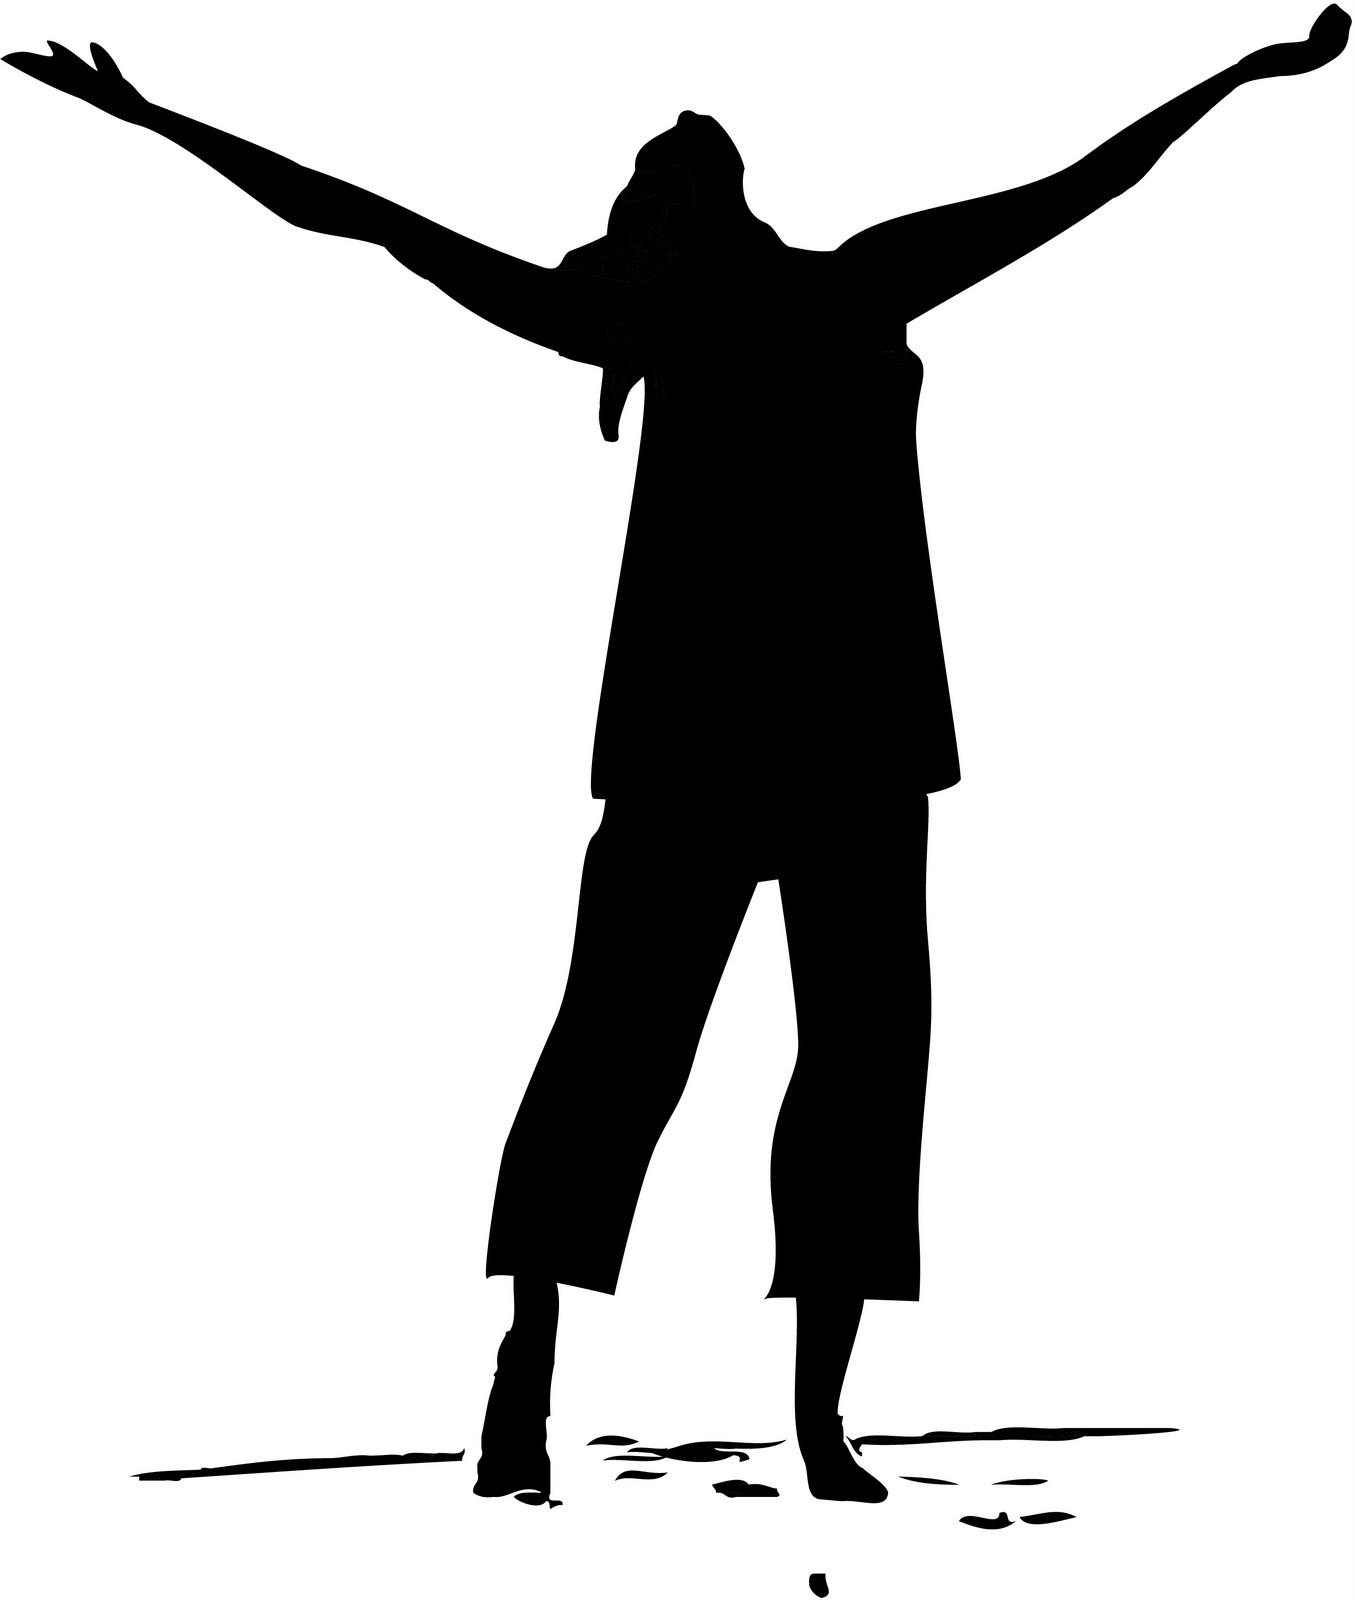 Free Praising God Cliparts, Download Free Clip Art, Free.